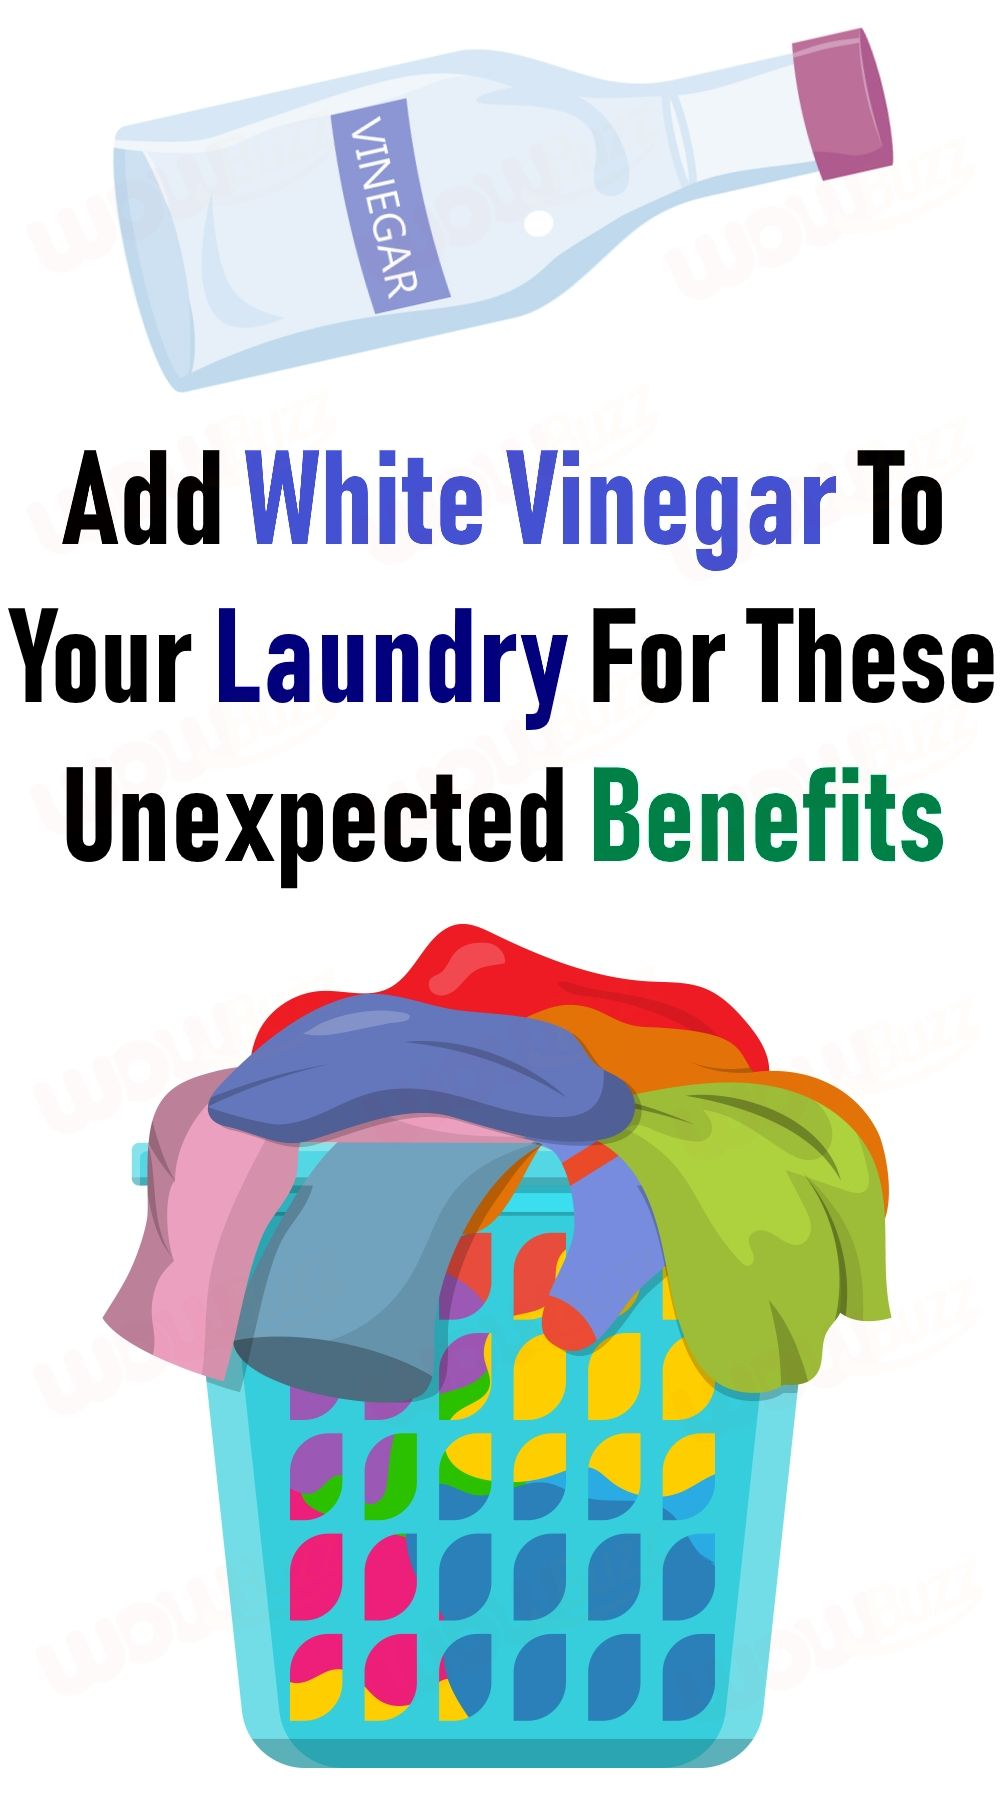 Add White Vinegar To Your Laundry For These Unexpected Benefits